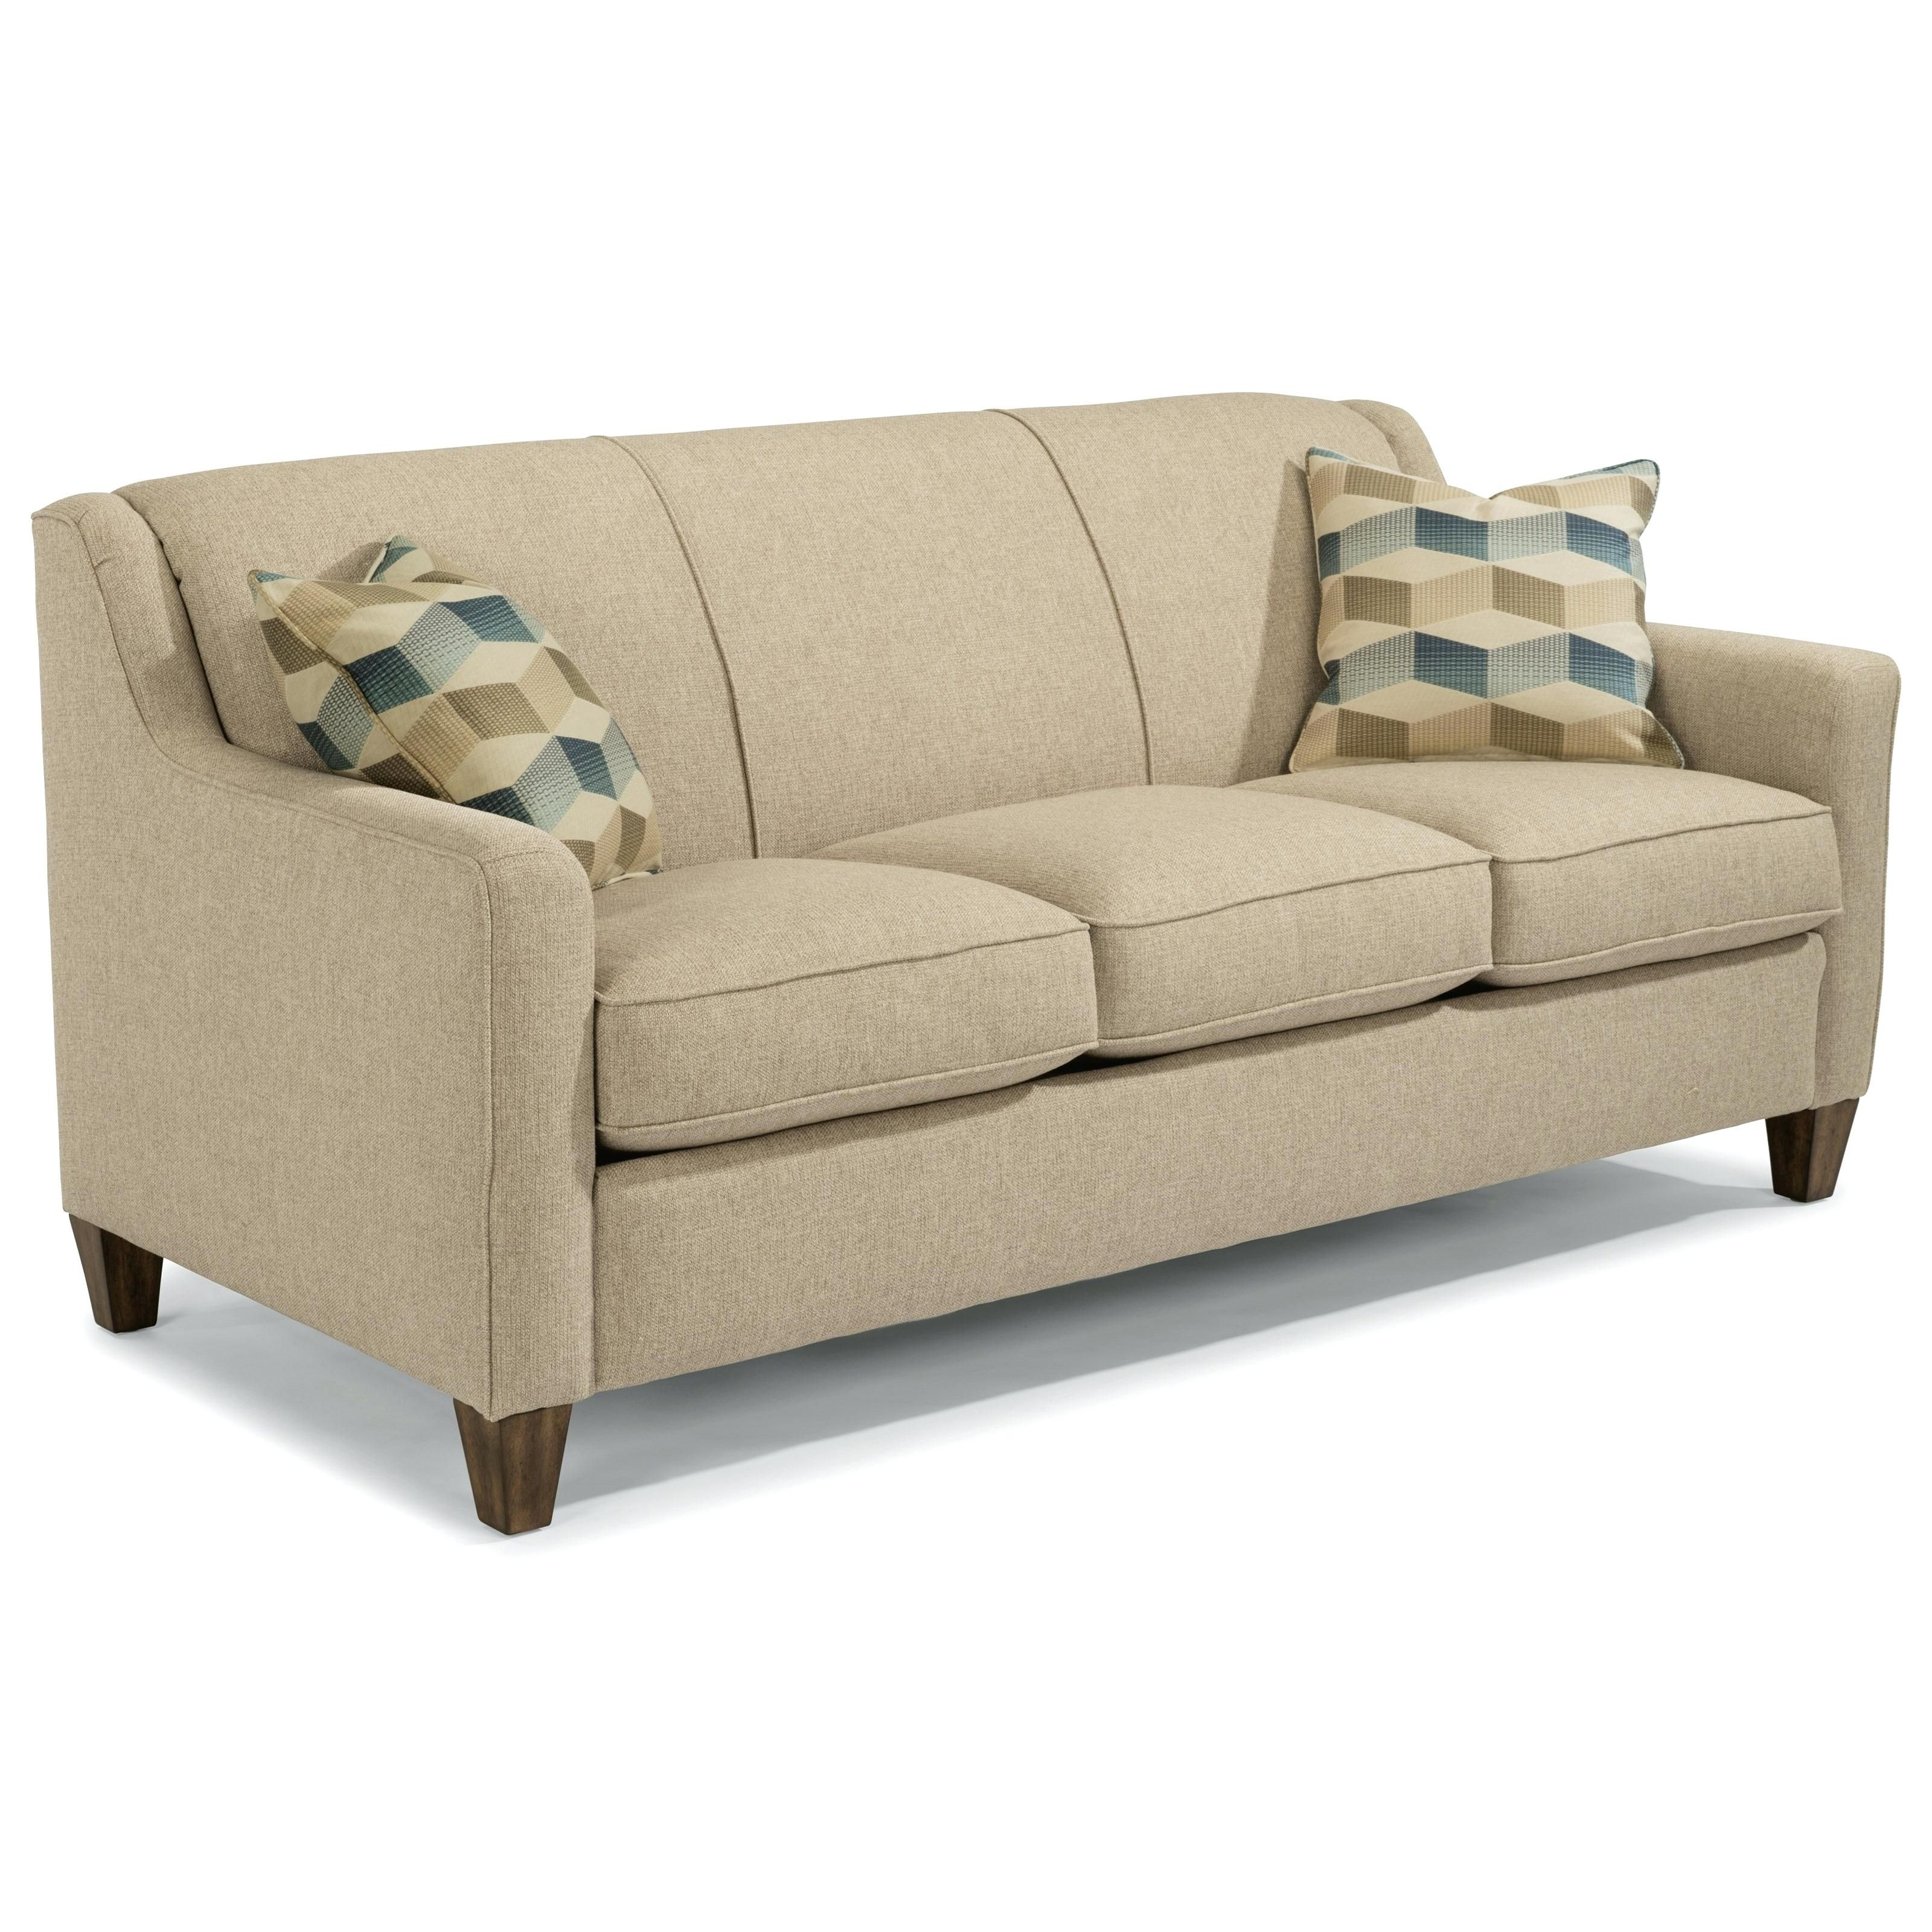 Sofa Support Bed Bath And Beyond Ikea Sectional With Chaise Sheets For Sleeper Mattress Custom Size